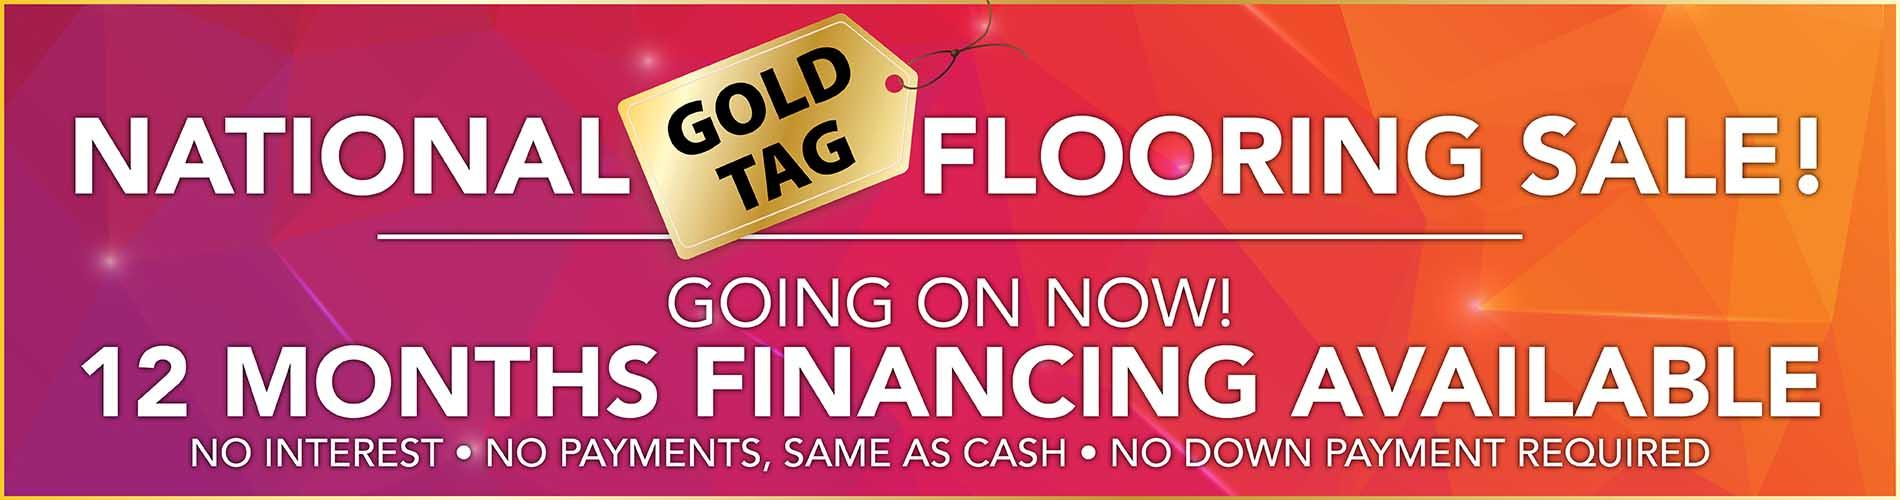 National Gold Tag Flooring Sale going on now! 12 months financing available – no interest – no payments, same as cash – no down payment required - Only at Bendele Abbey Flooring & Rug in Fort Myers, Florida